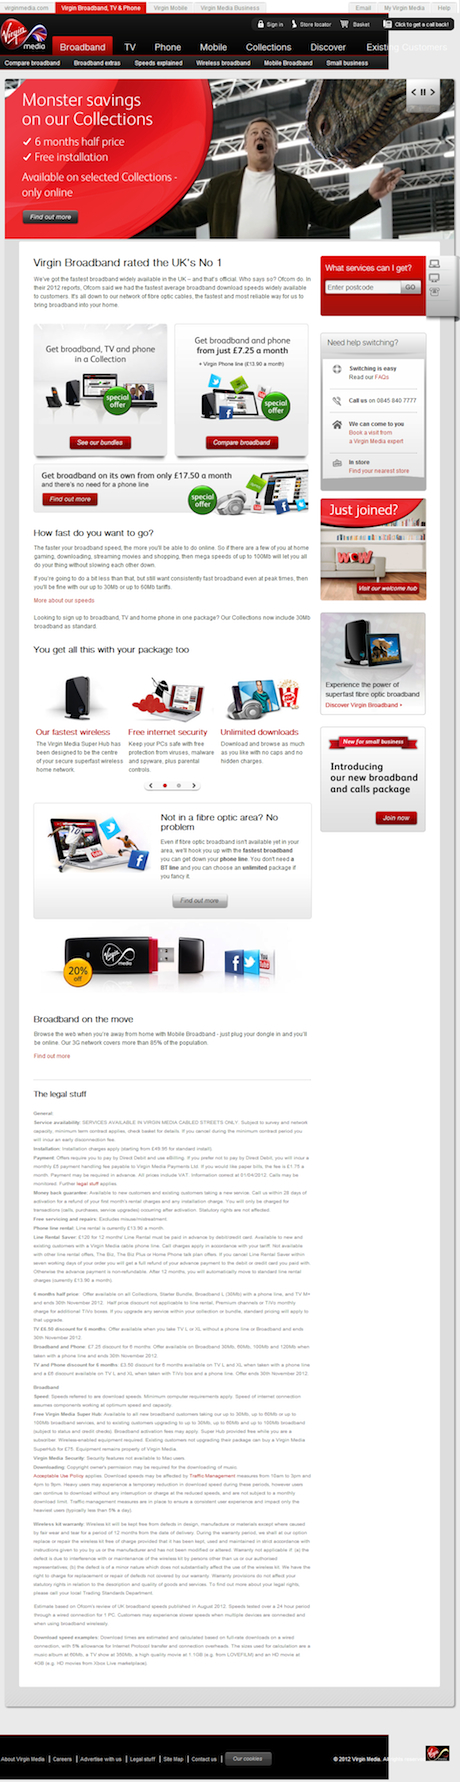 Virgin Media Unlimited